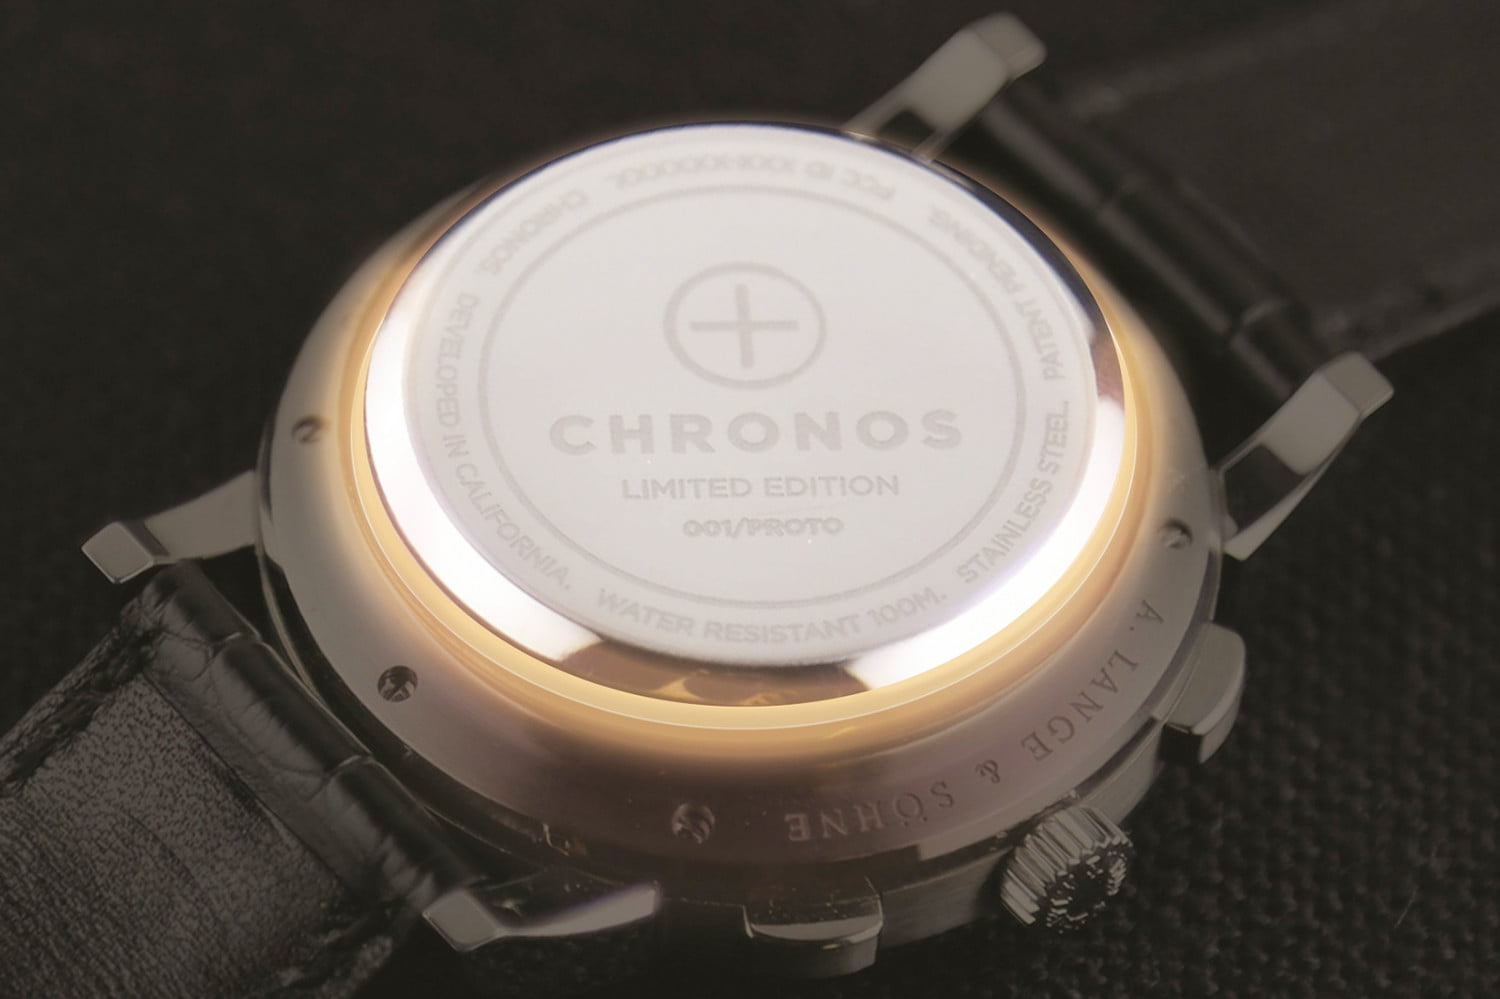 The Chronos Gives Your Stupid Watch Superpowers Digital Trends